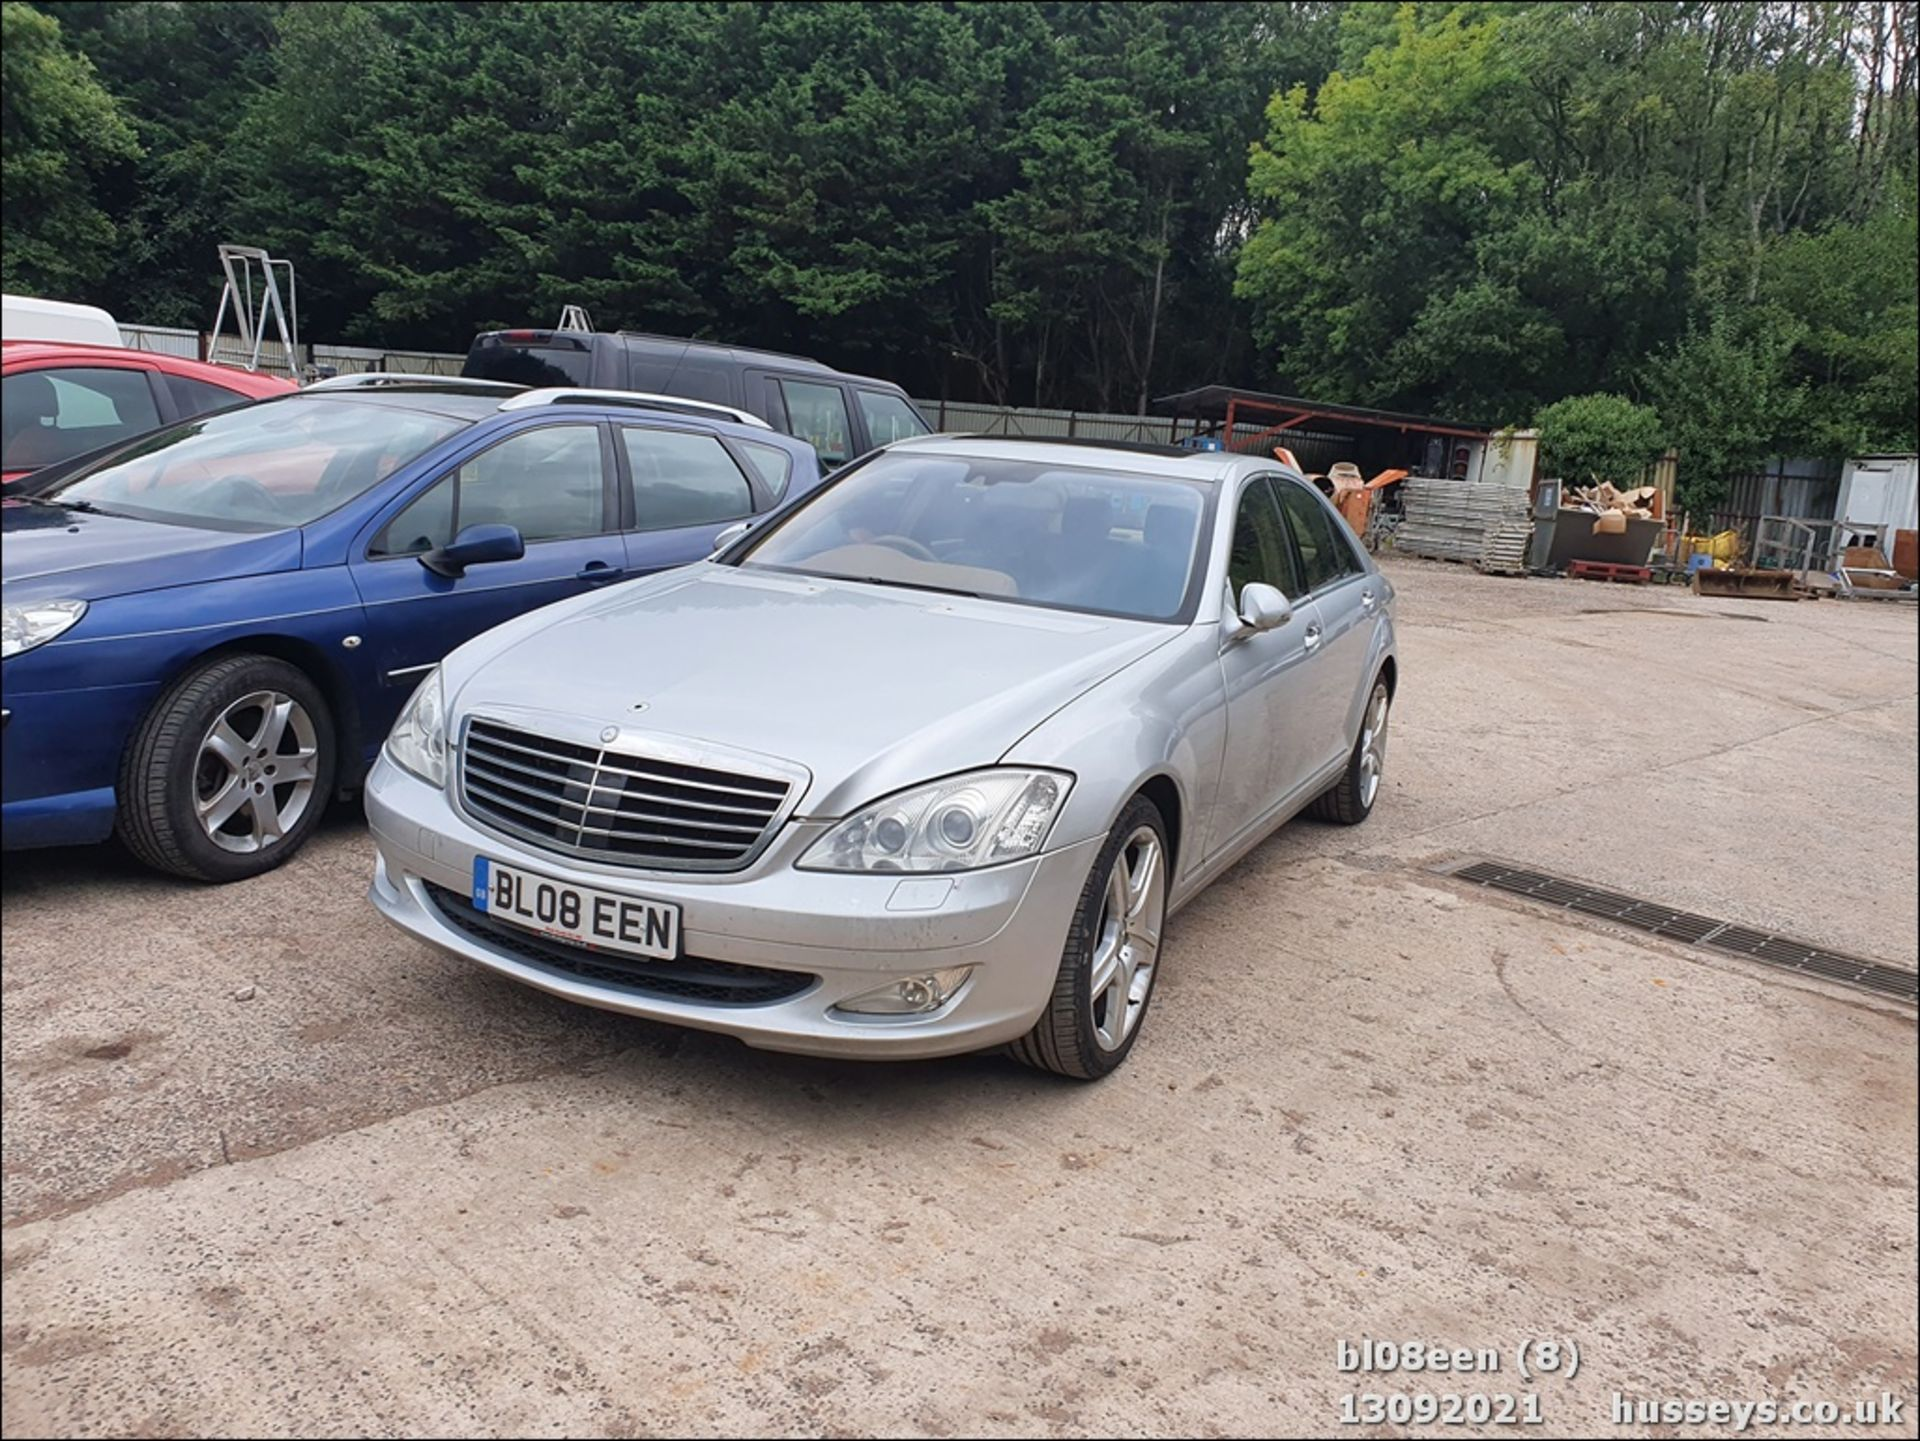 08/08 MERCEDES S320 CDI AUTO - 2987cc 4dr Saloon (Silver, 205k) - Image 8 of 16